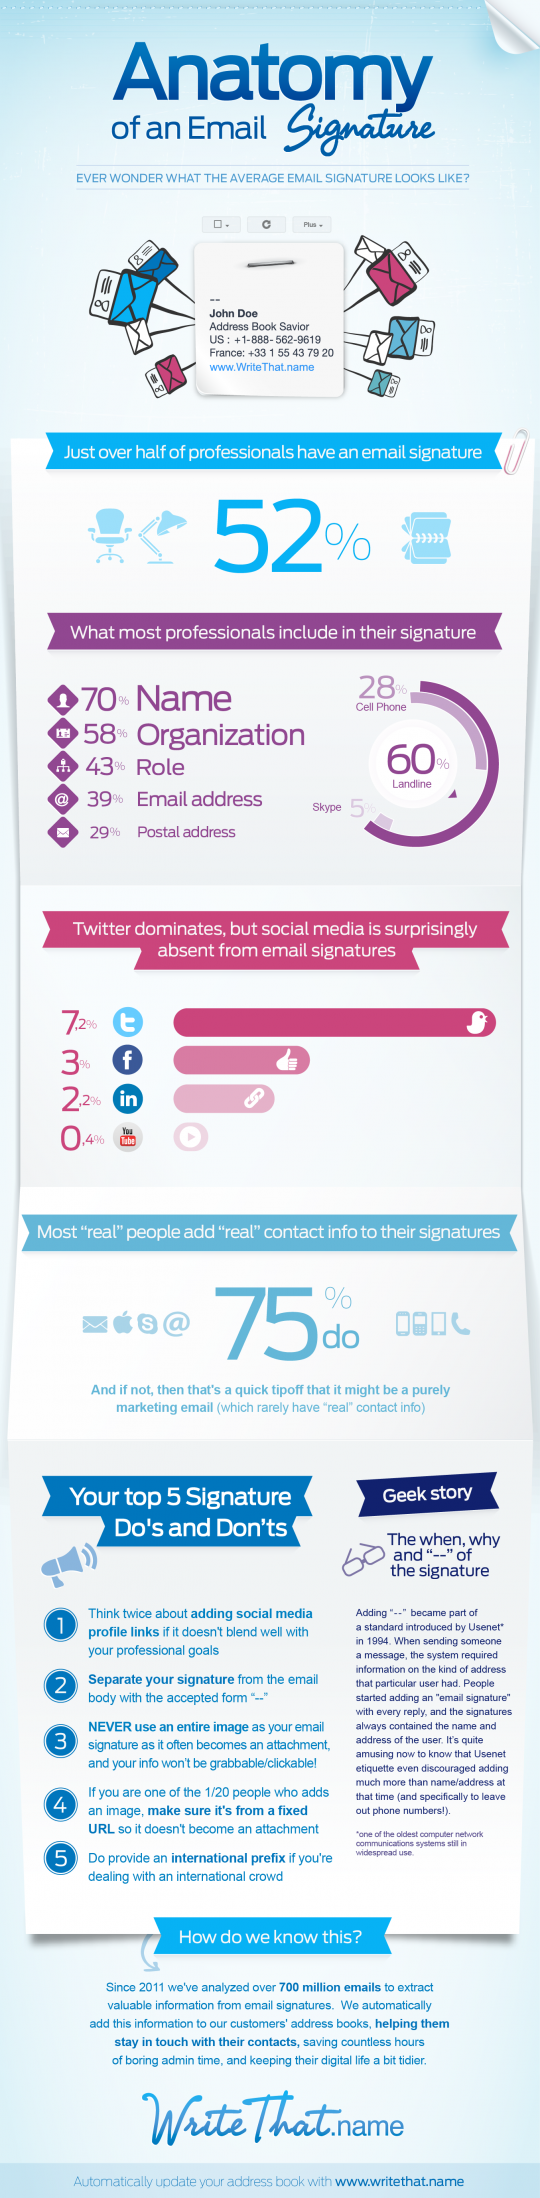 INFOGRAPHIC: Anatomy of an Email Signature